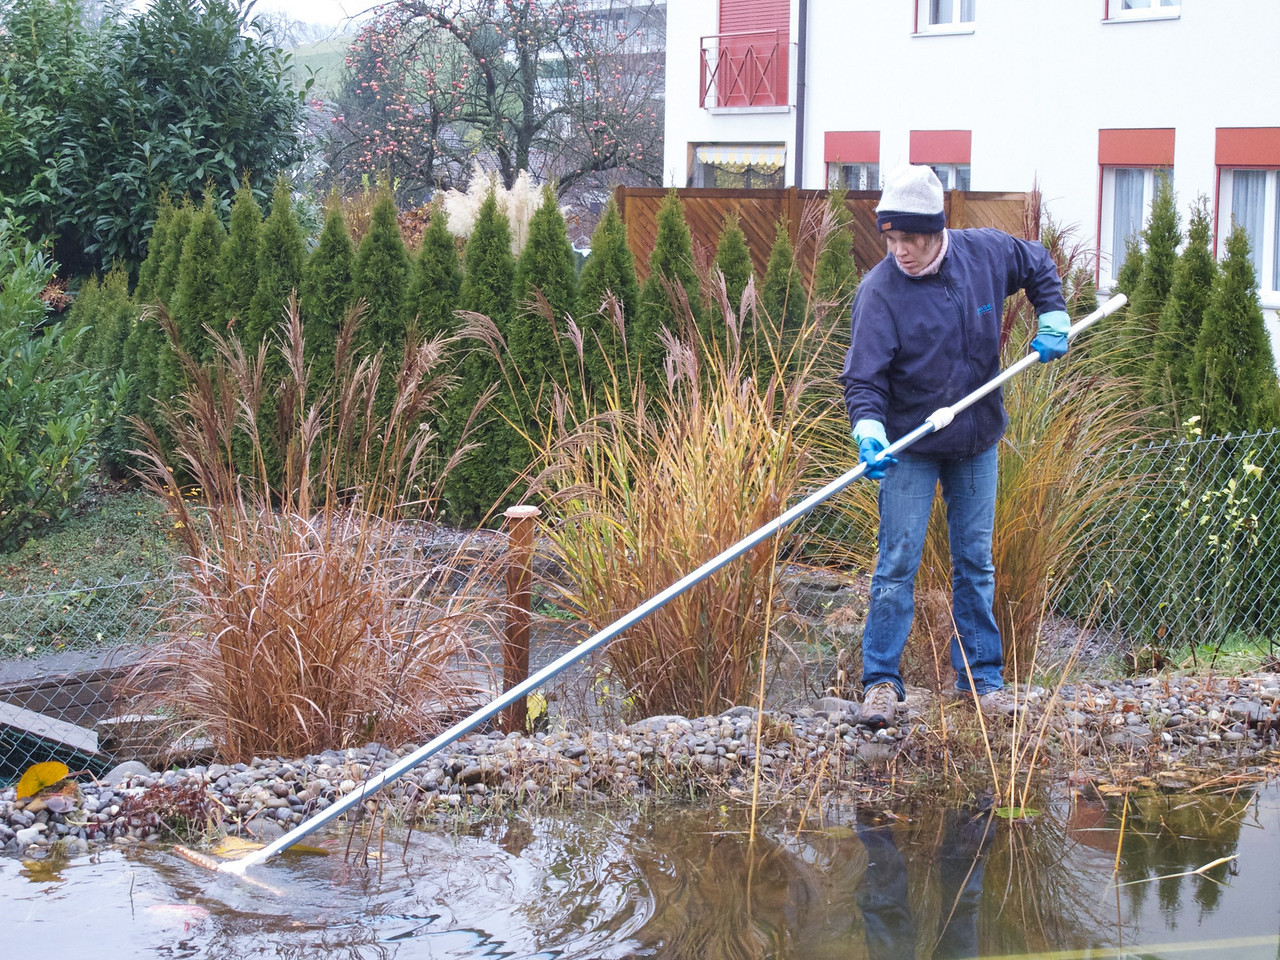 Tuesday 23rd November 2010 - Kerstin rakes the leaves out of the pond